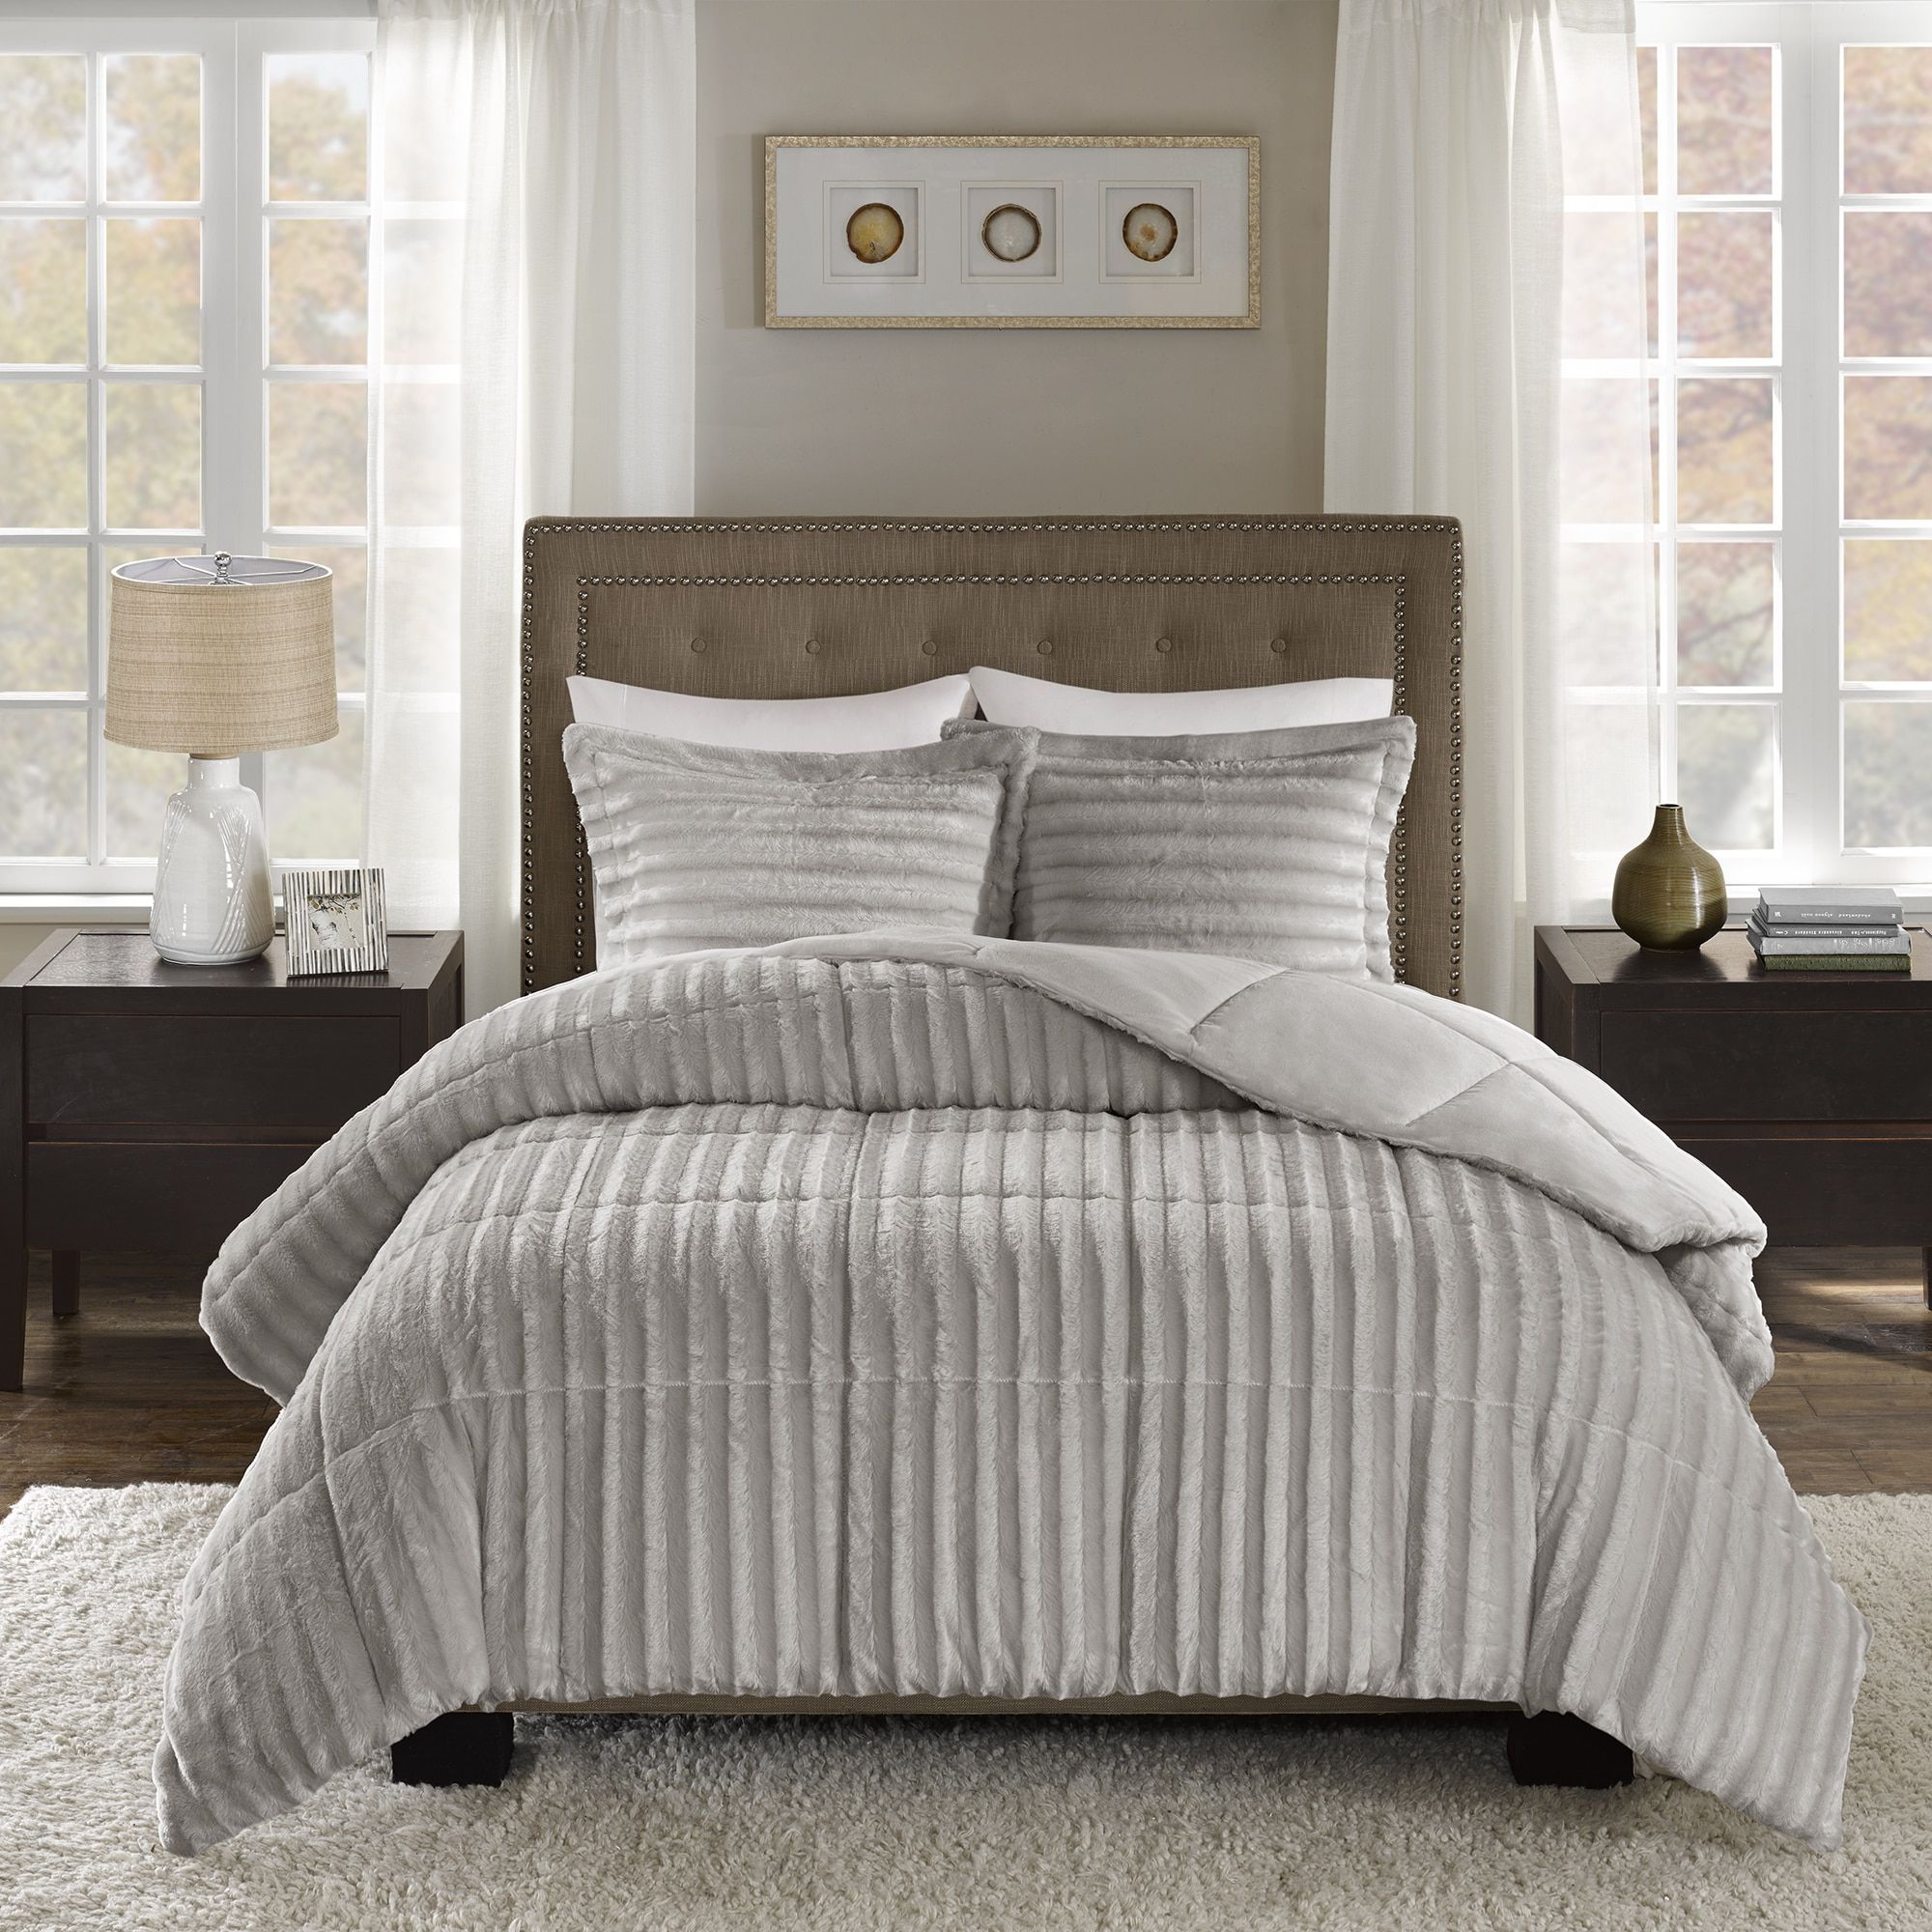 ideas fur uk fox with of saga the royal faux queen full gray set prod headboard comforter king blanket size my spin pinterest twin on cannon blue bedding bed covers